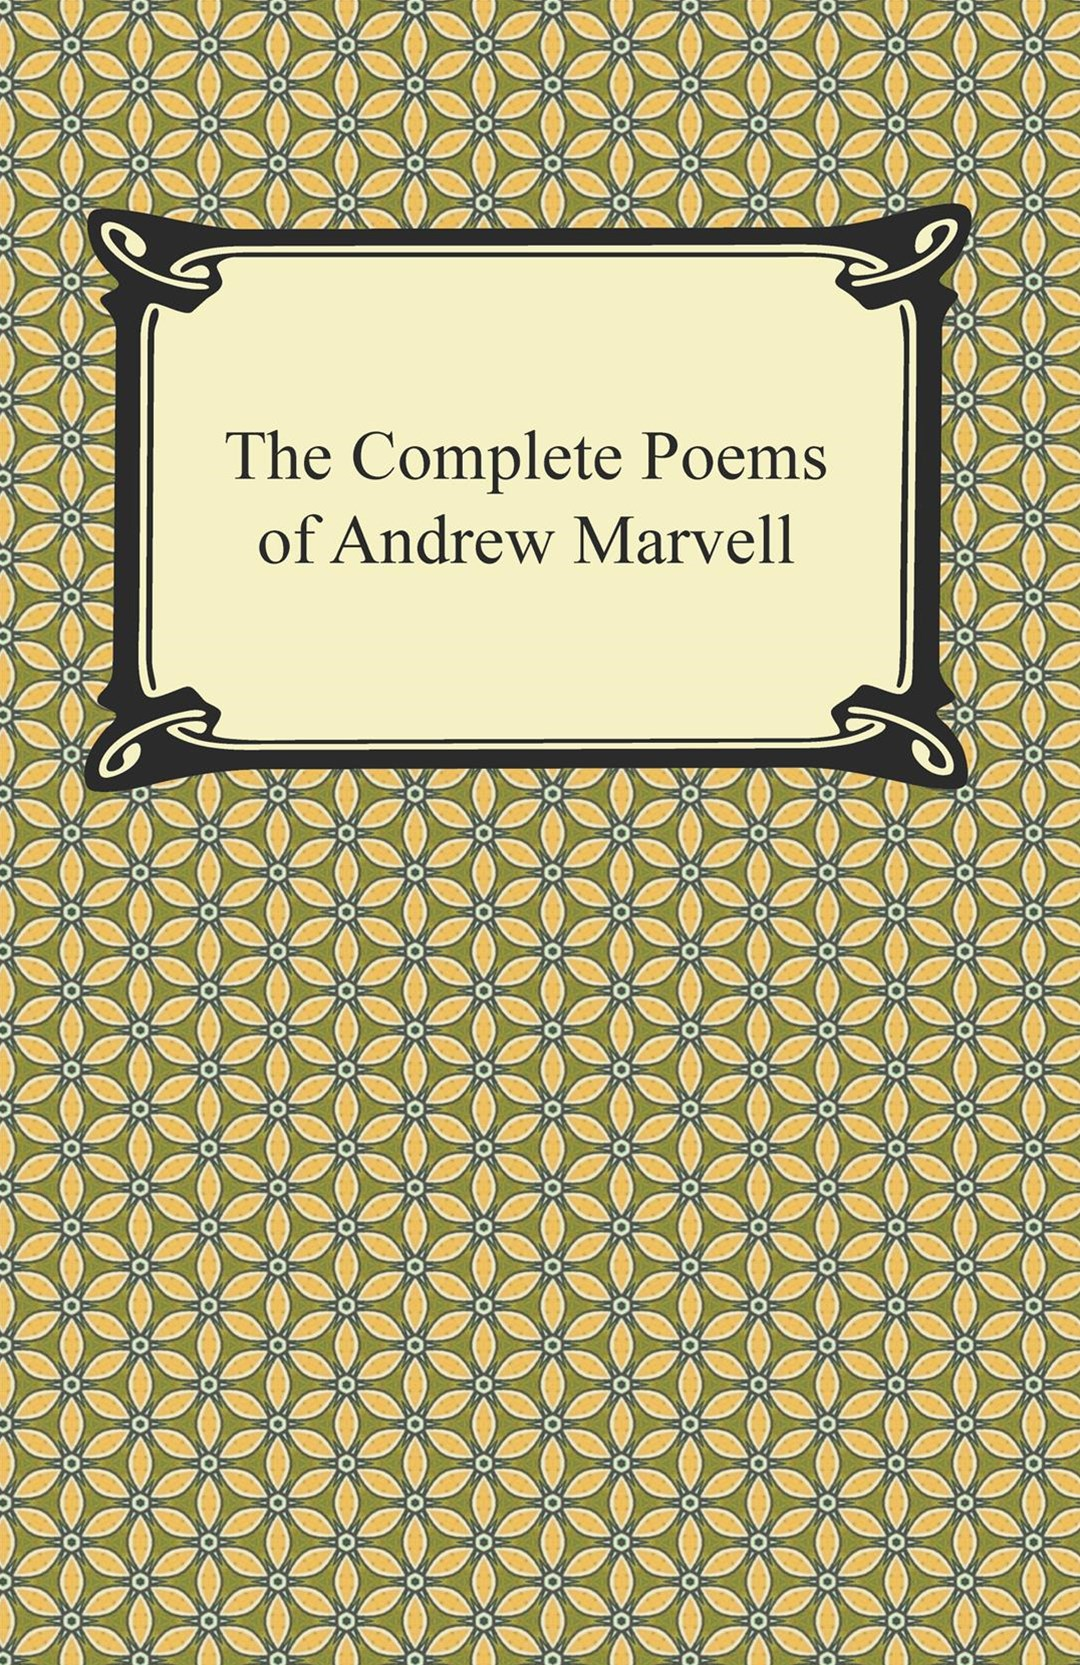 Complete Poems of Andrew Marvell